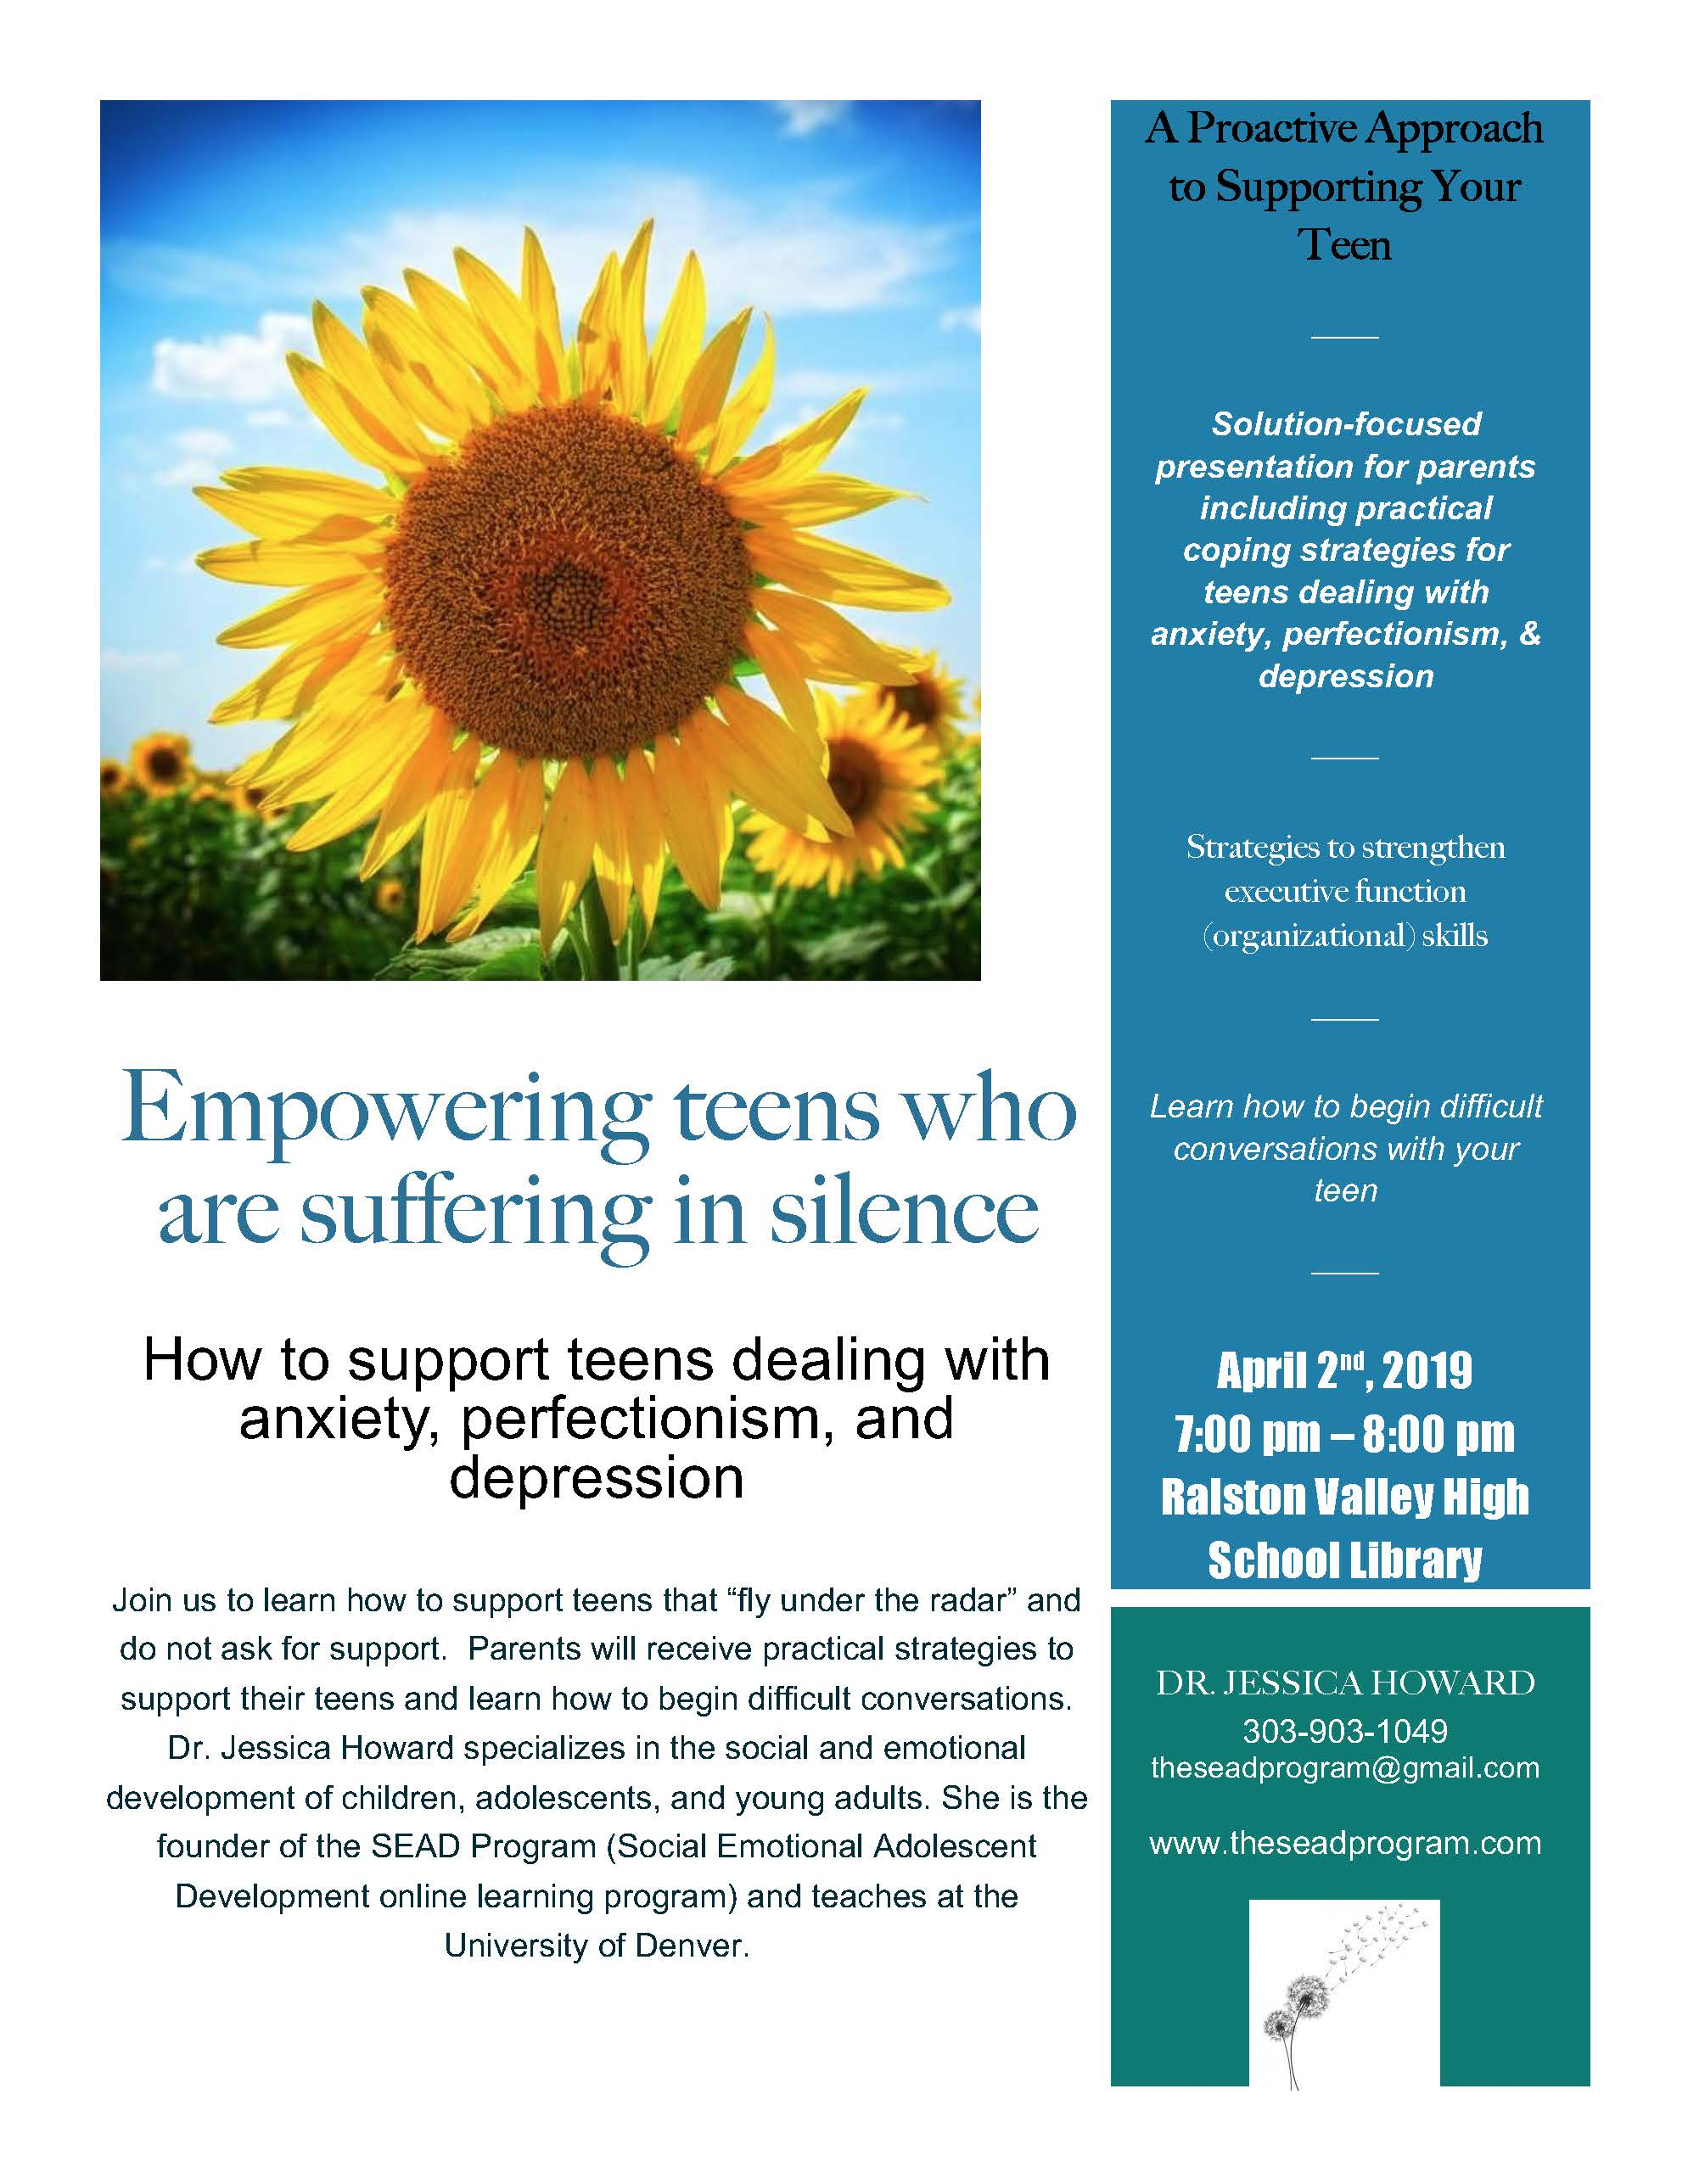 Supporting Teens Dealing with Anxiety, Perfectionism, and